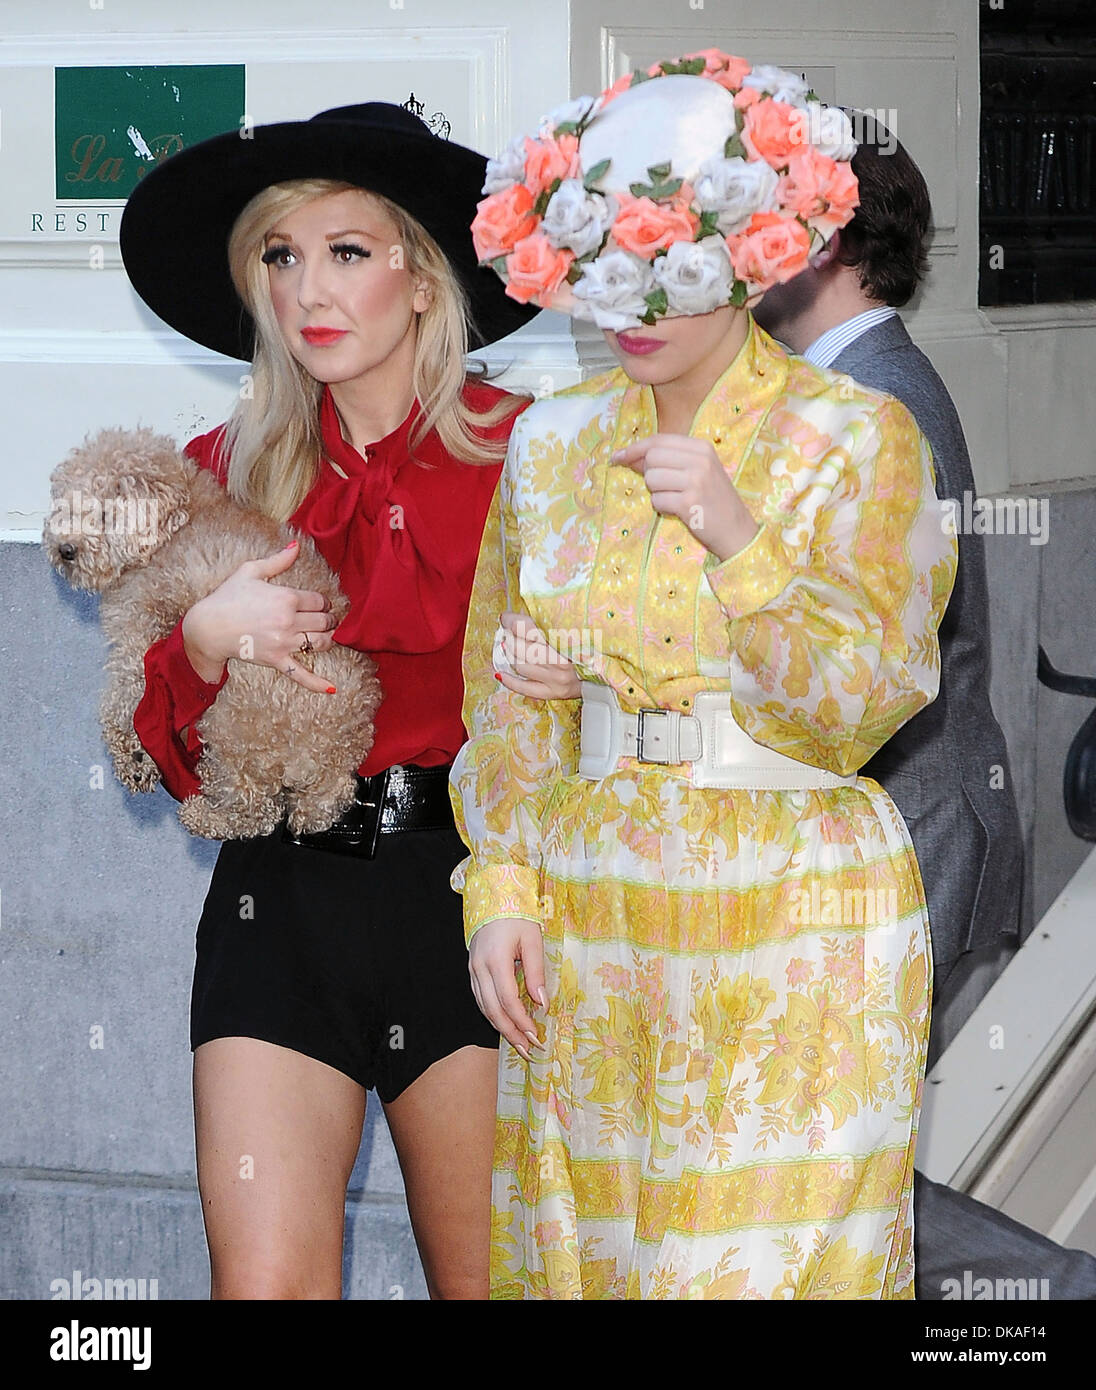 lady-gaga-leaves-her-hotel-with-make-up-